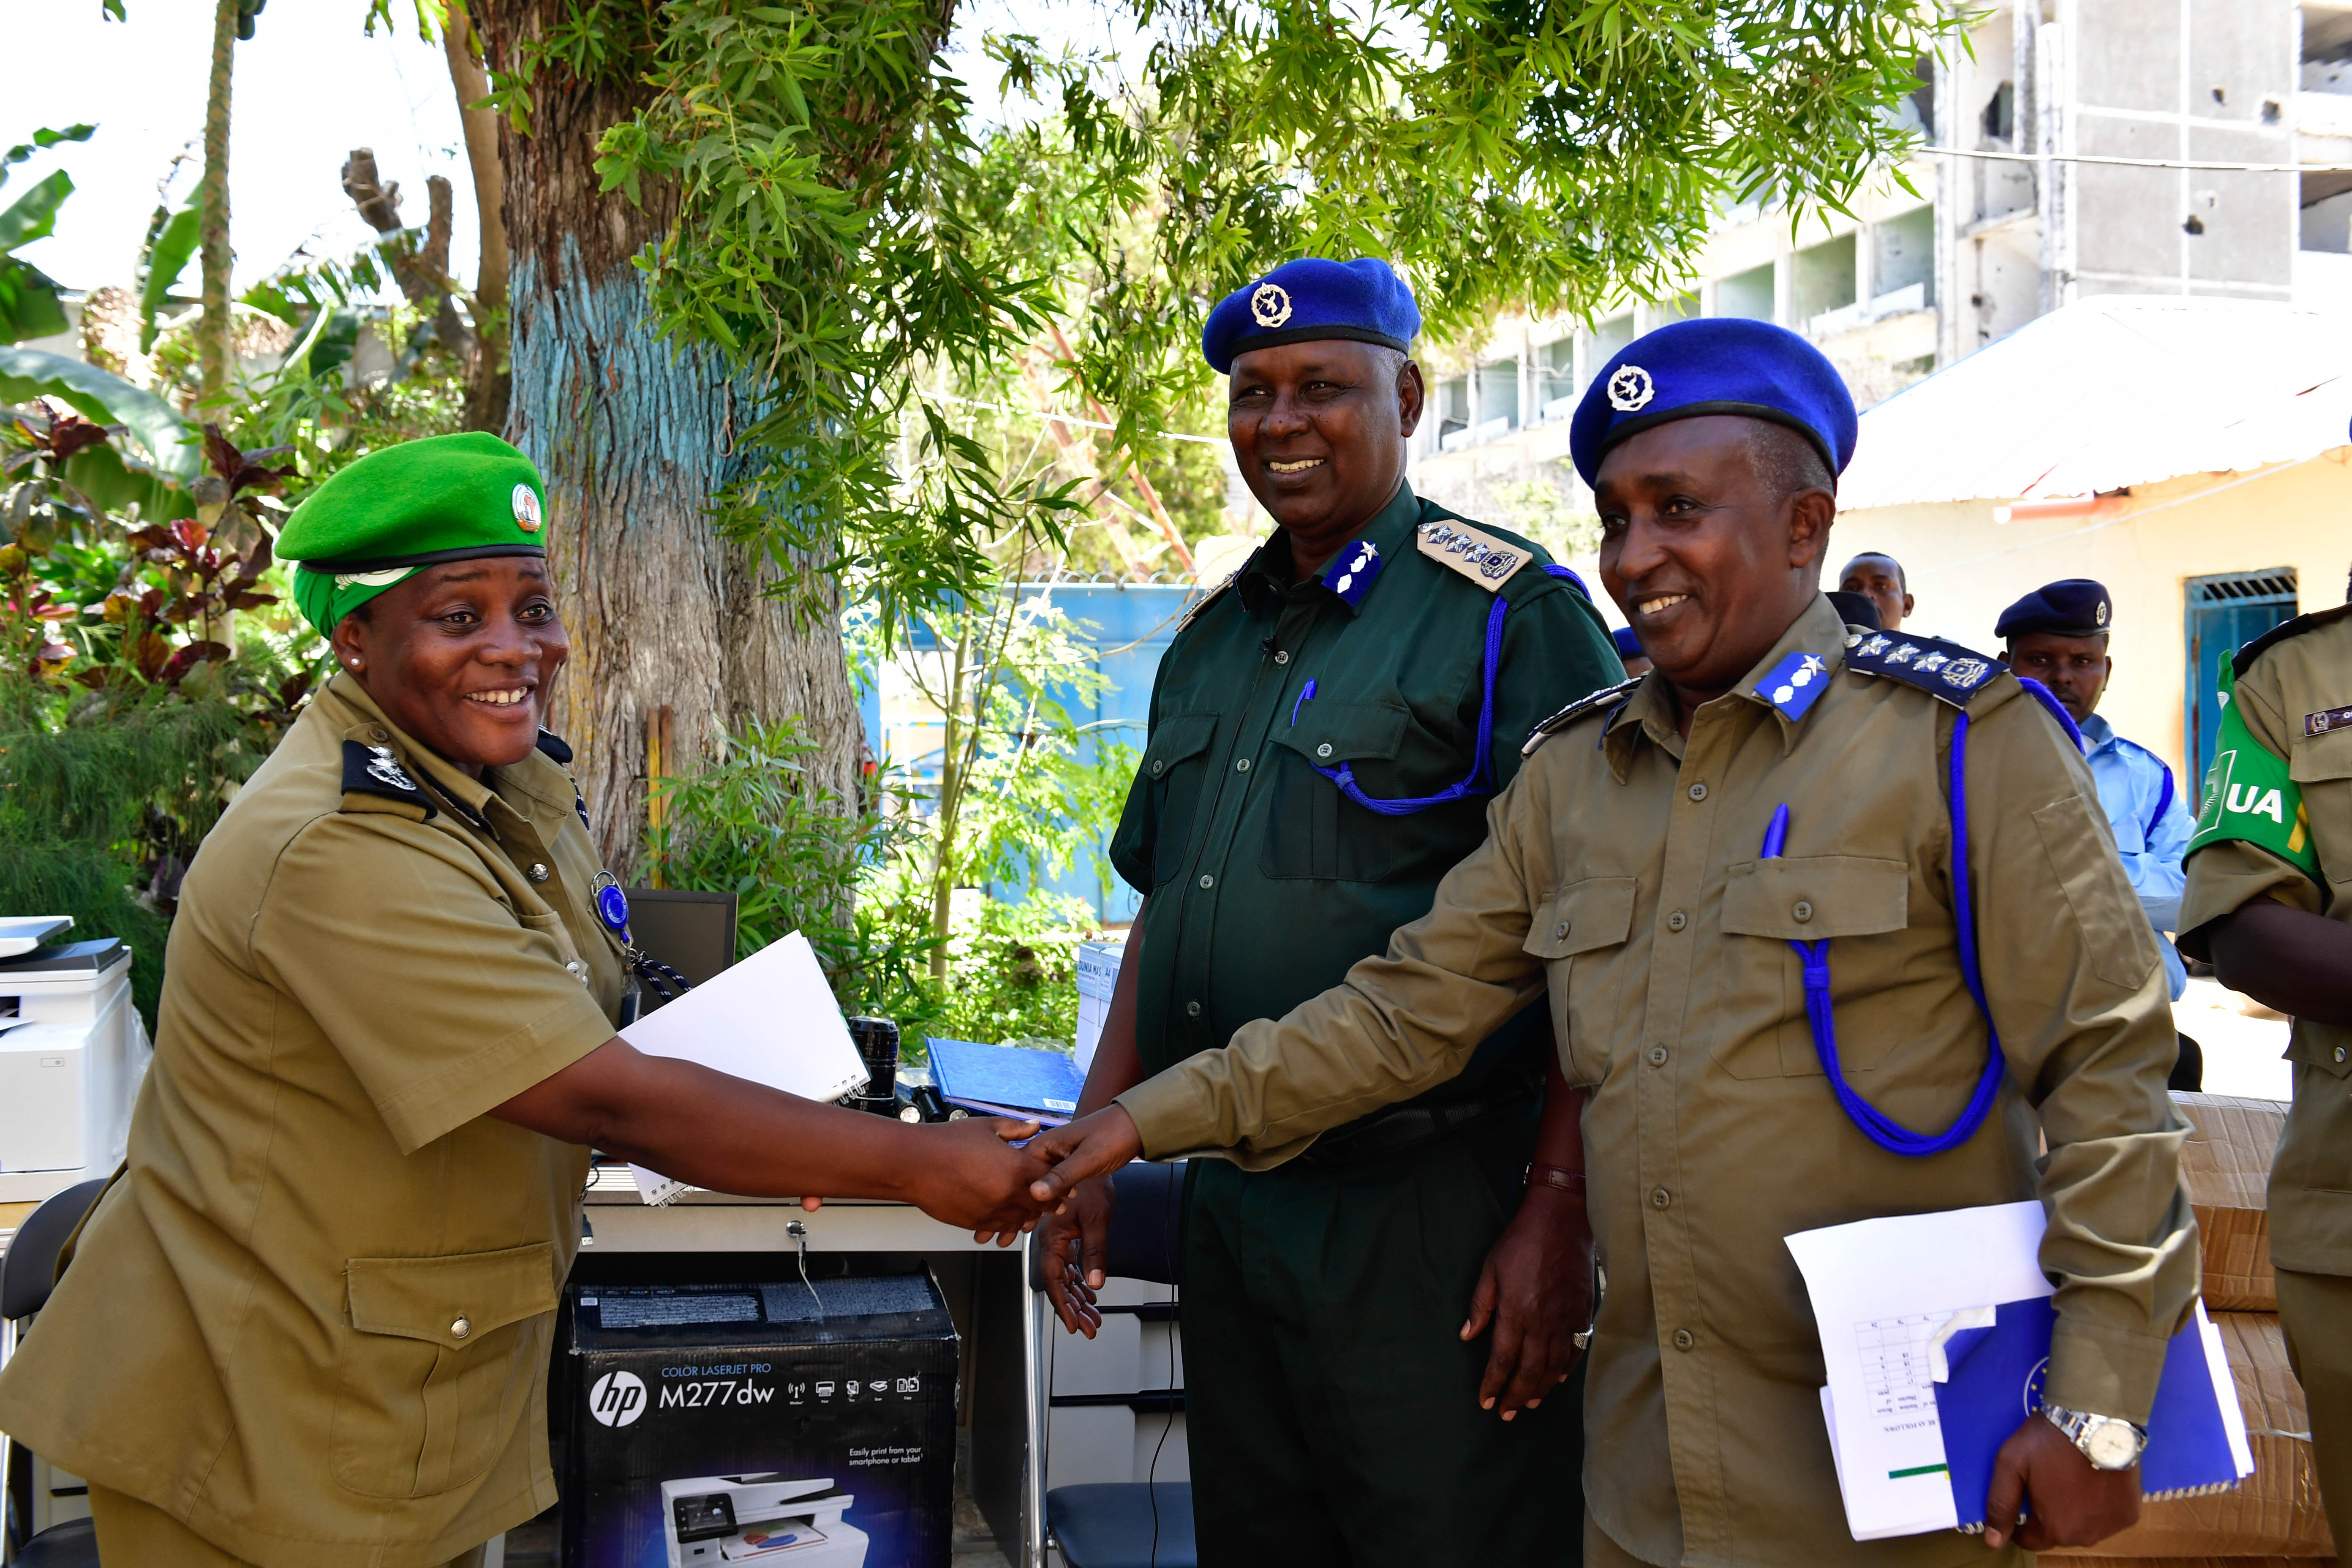 Christine Alalo, the Deputy Police Commissioner of the African Union Mission in Somalia (AMISOM) hands over office equipment donated by AMISOM to the Somali Police Force in Mogadishu, Somalia on September 18, 2017. AMISOM Photo / Mohamed Haji